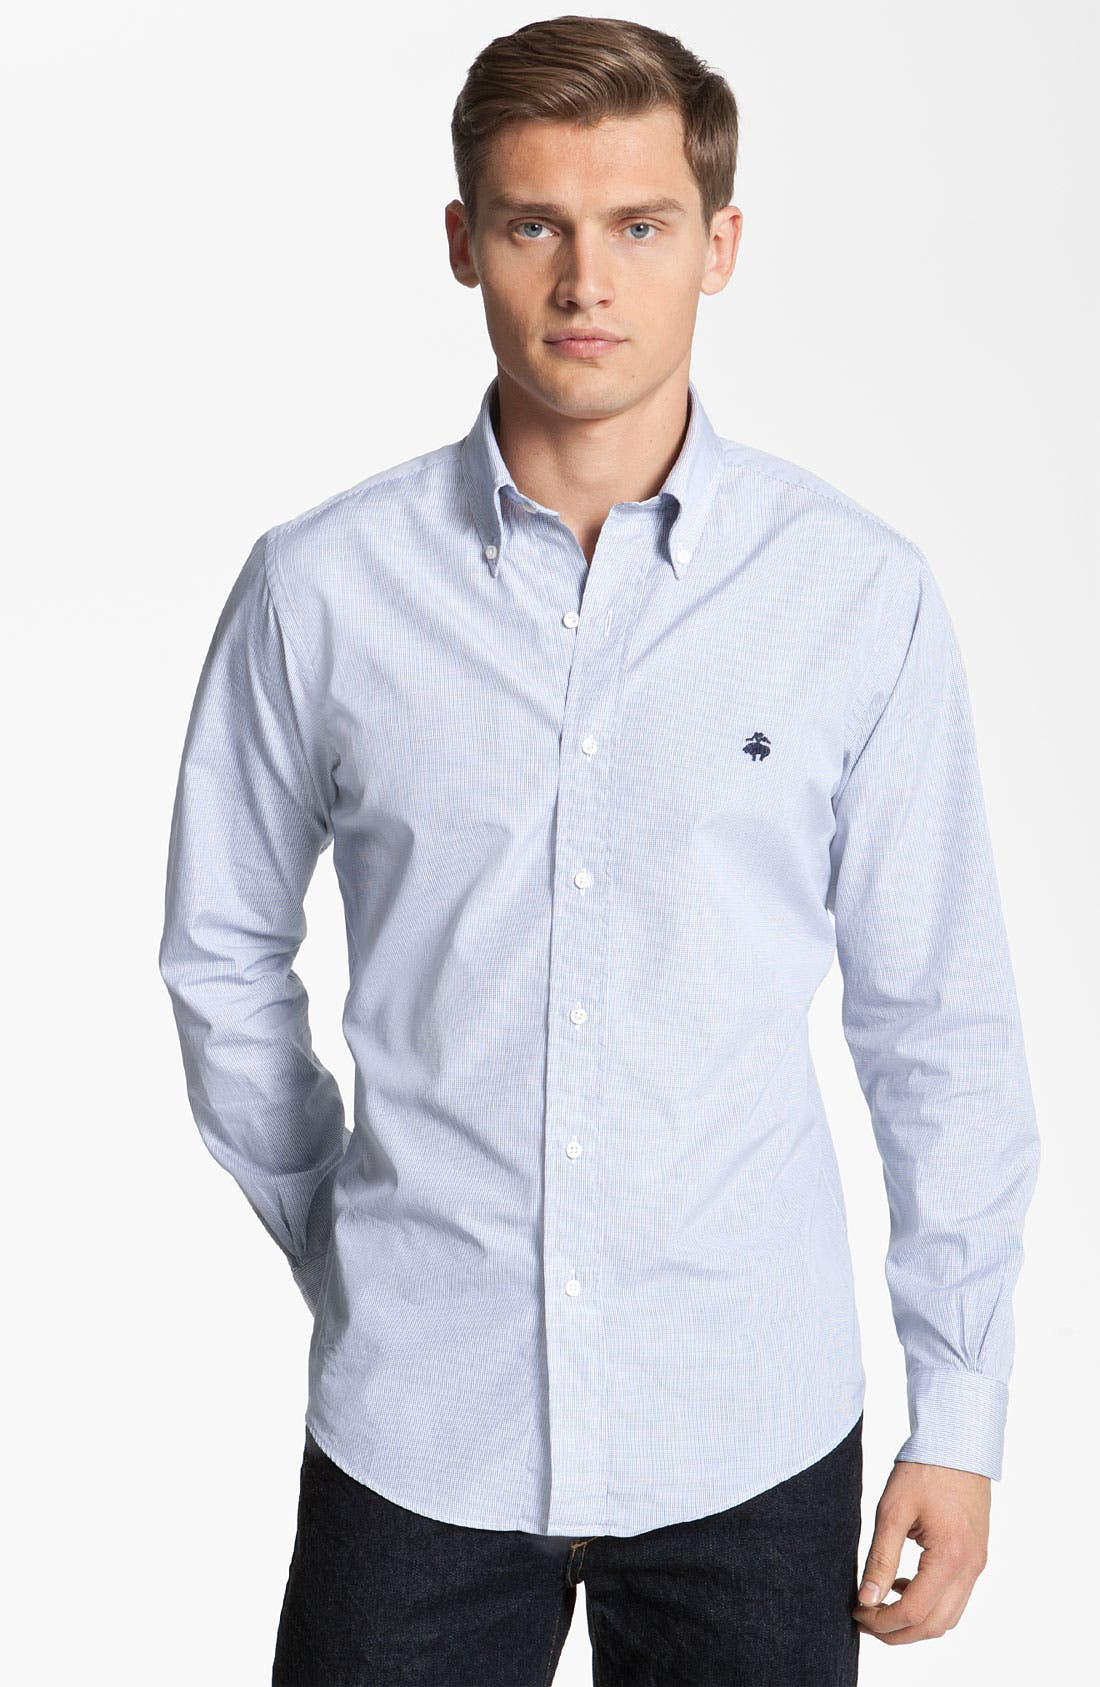 Alternate Image 1 Selected - Brooks Brothers by Jeffrey Tattersall Woven Shirt